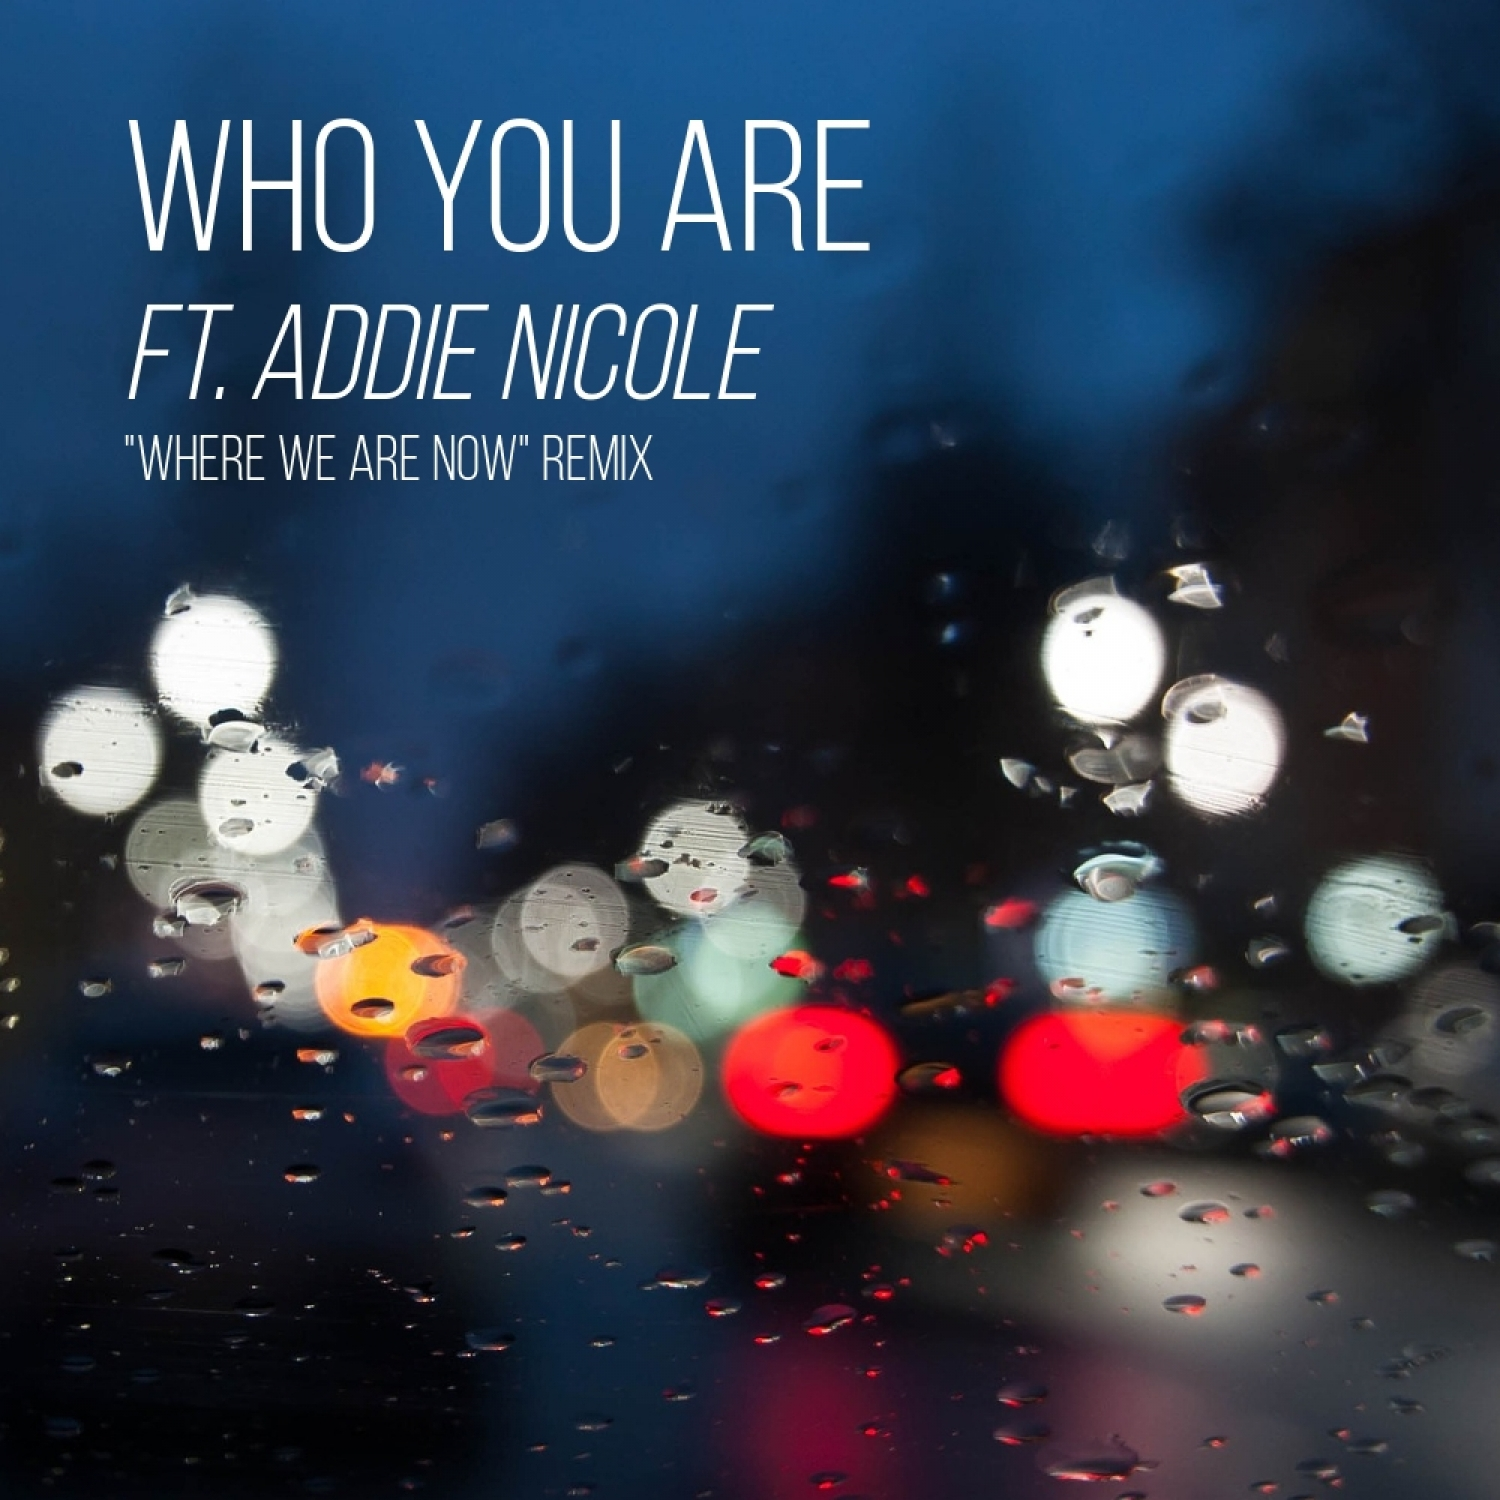 Ben Philp & Addie Nicole - Who You Are (feat. Addie Nicole) (Original Mix)